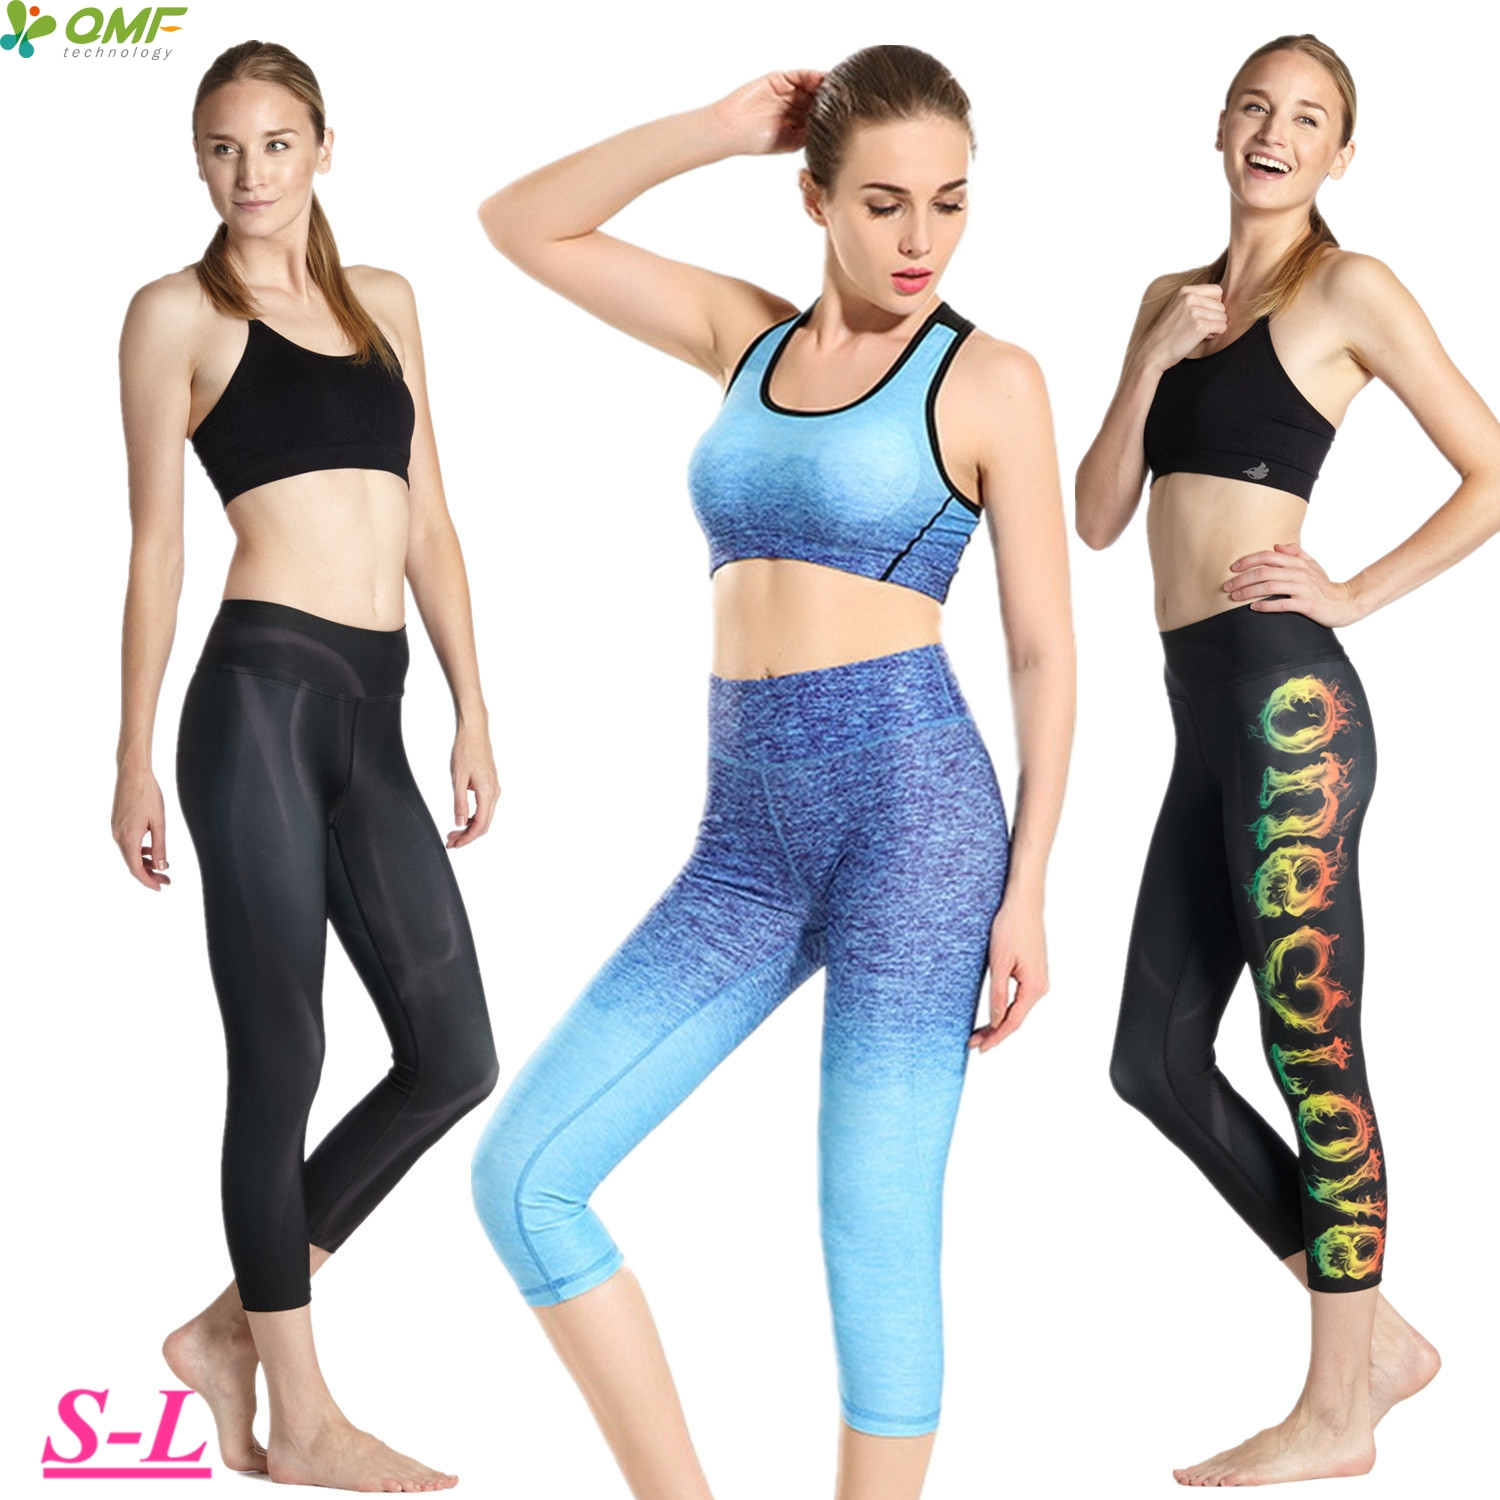 917cbb7abe631 Sky Blue Compression Running Capris Leggings Elastic Black Dry Fit Yoga  Fitness Workout Cropped Tights Women's Slim Fit Trousers-in Running Tights  from ...